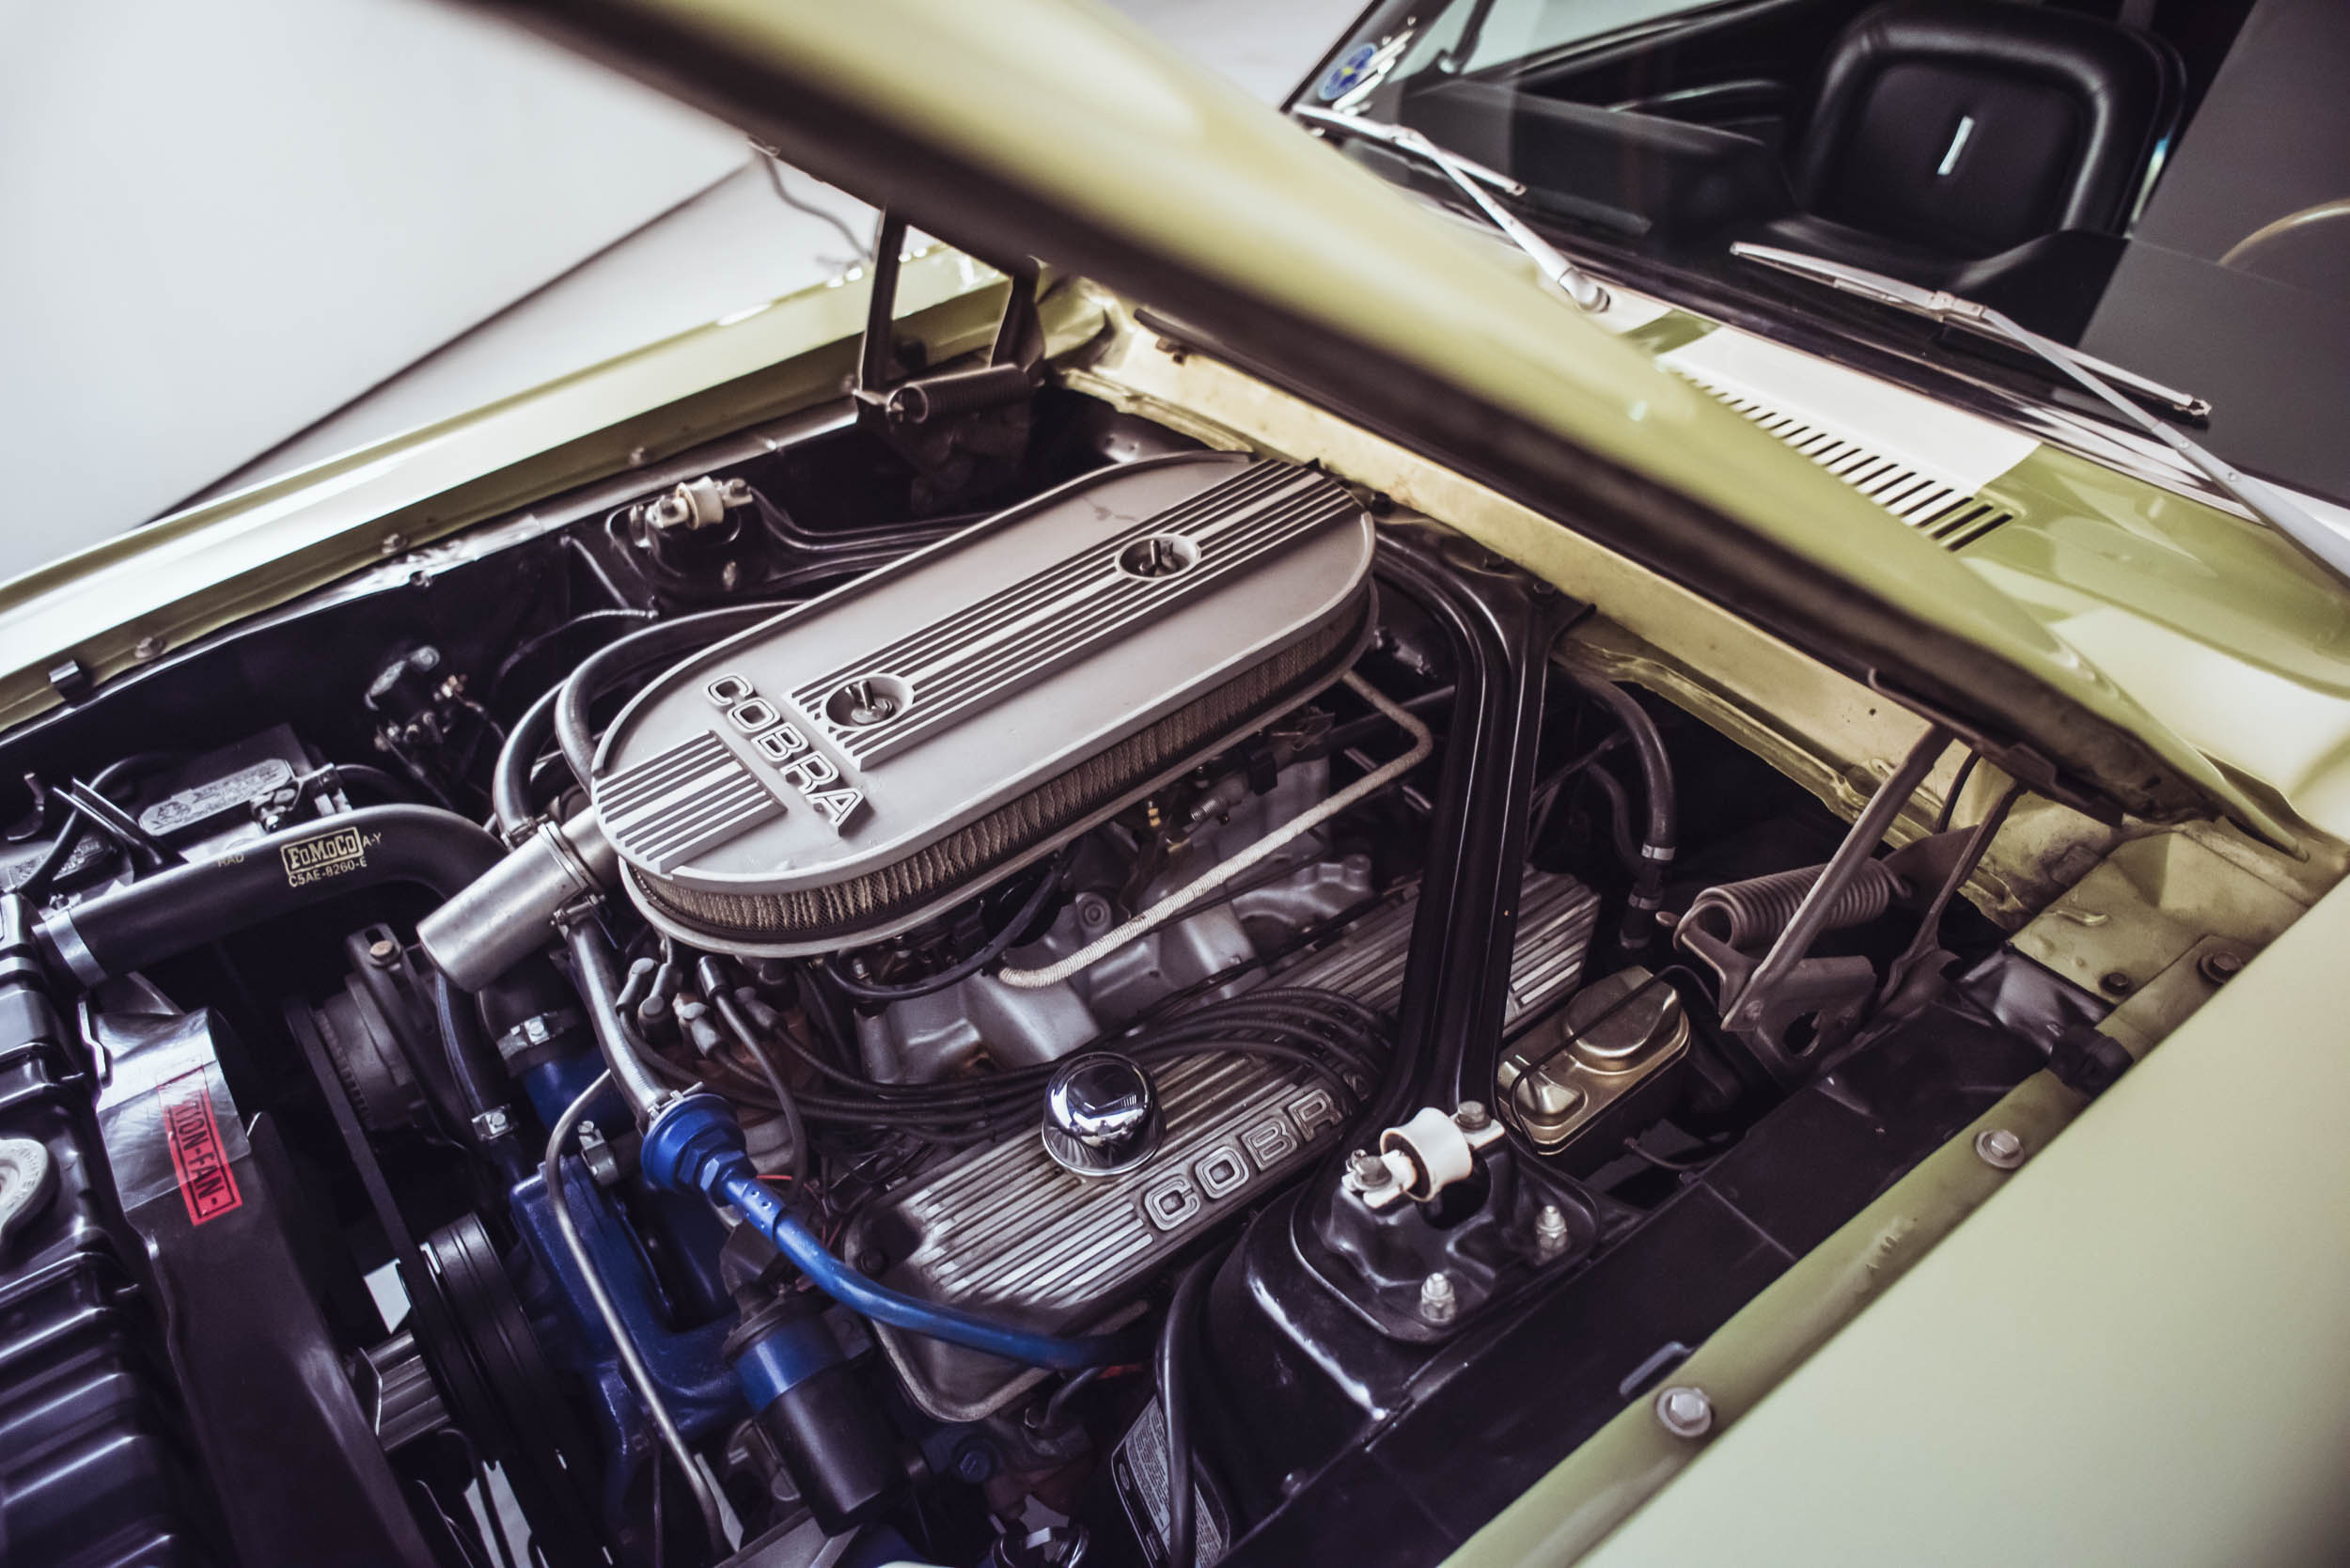 1967 Shelby GT500 engine